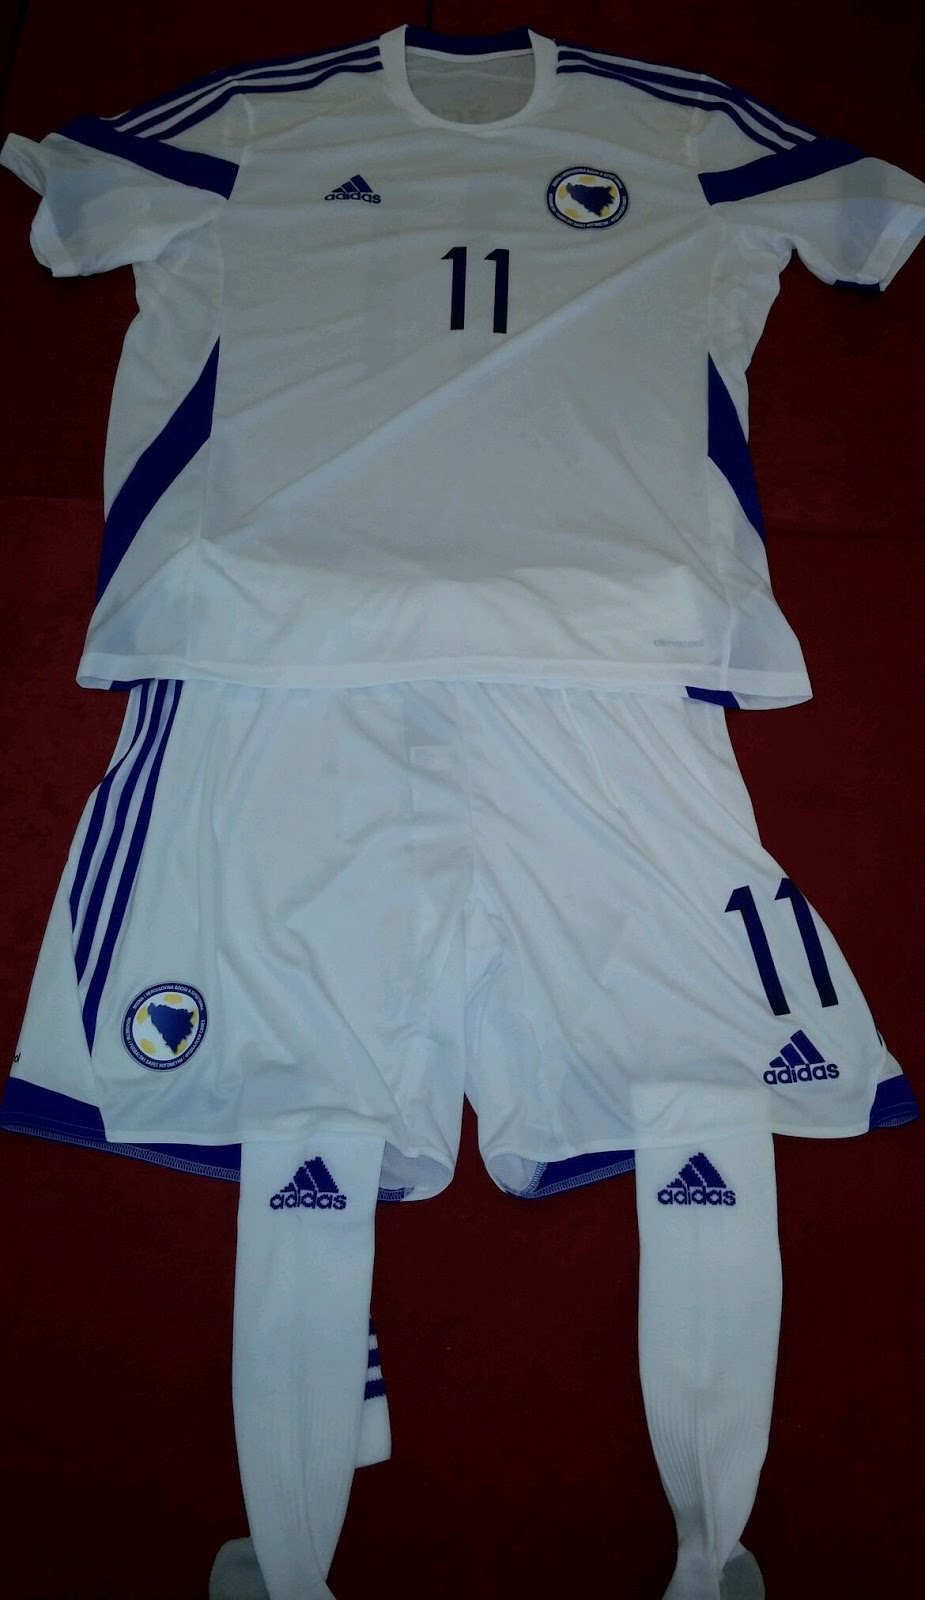 bosnien wm